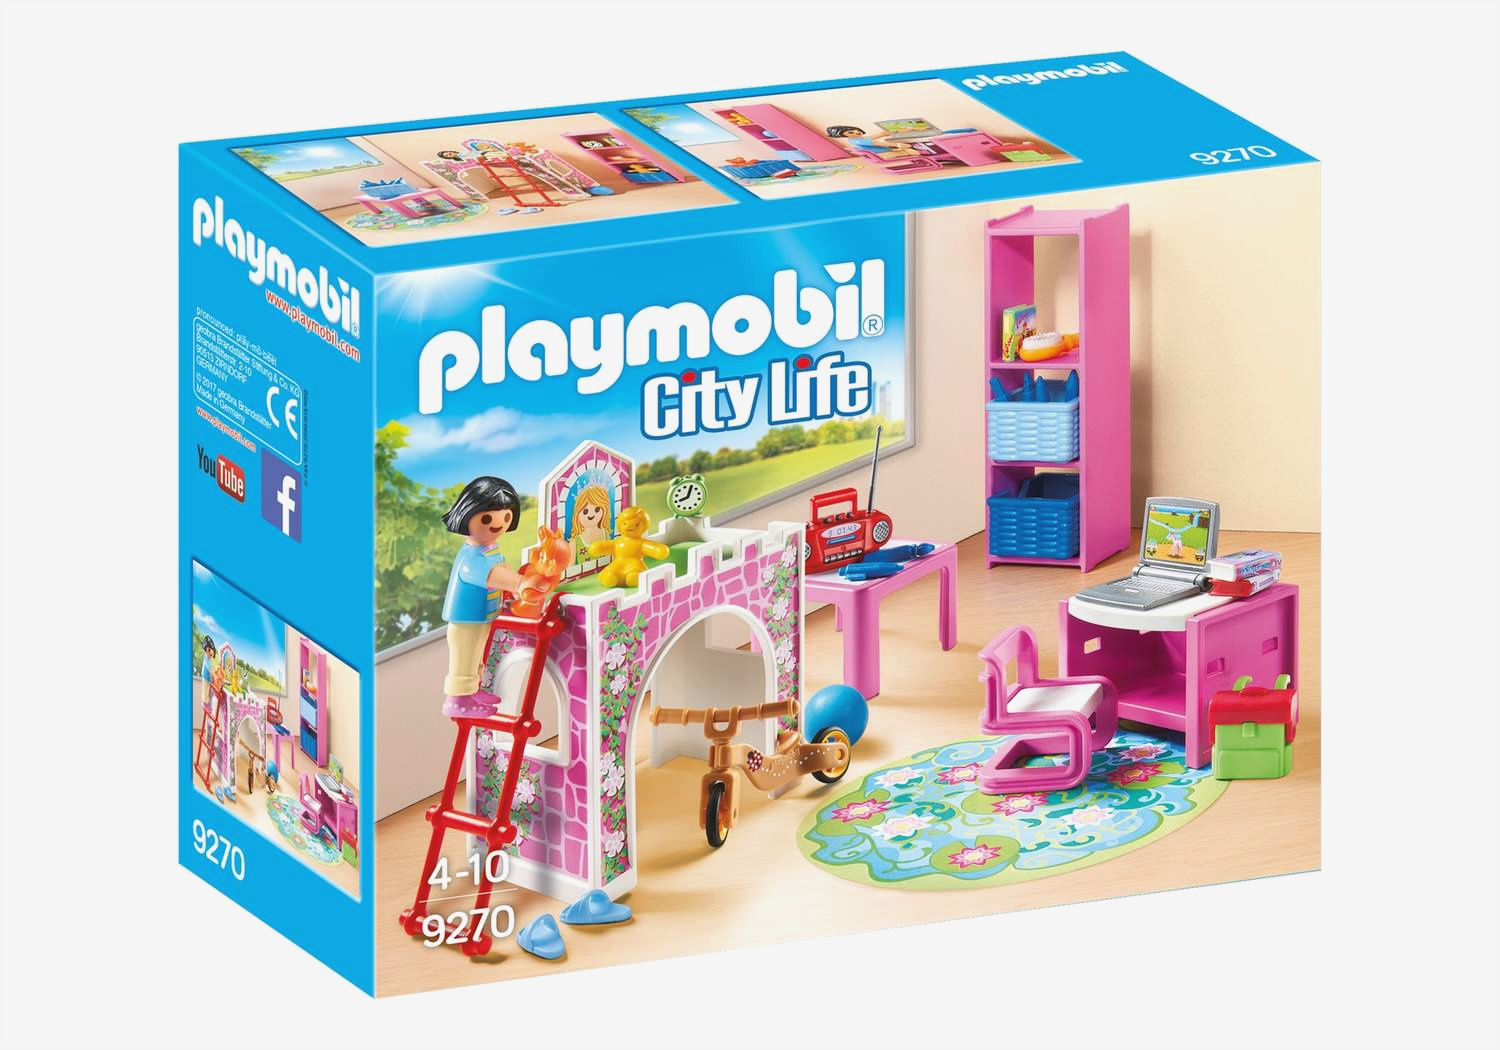 Full Size of Playmobil Kinderzimmer Junge 6556 5333 Froehliches Traumhaus Regale Regal Weiß Sofa Wohnzimmer Playmobil Kinderzimmer Junge 6556